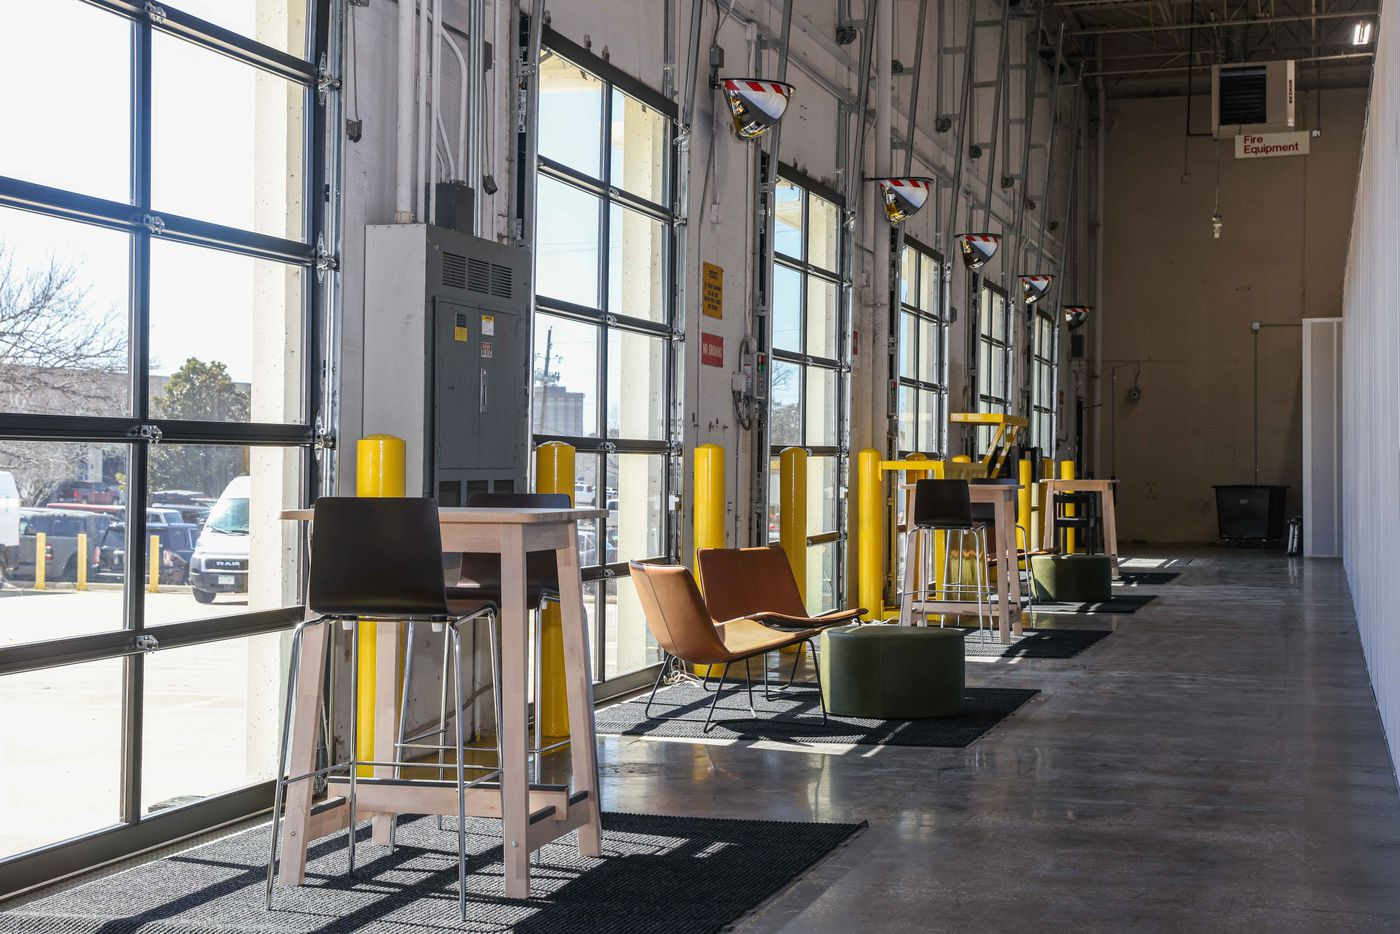 SaltBox offers warehouse space, mostly for small independent businesses, plus shipping services and even a photo studio in Farmers Branch, Texas on Wednesday, March 3, 2021. (Lola Gomez/The Dallas Morning News)